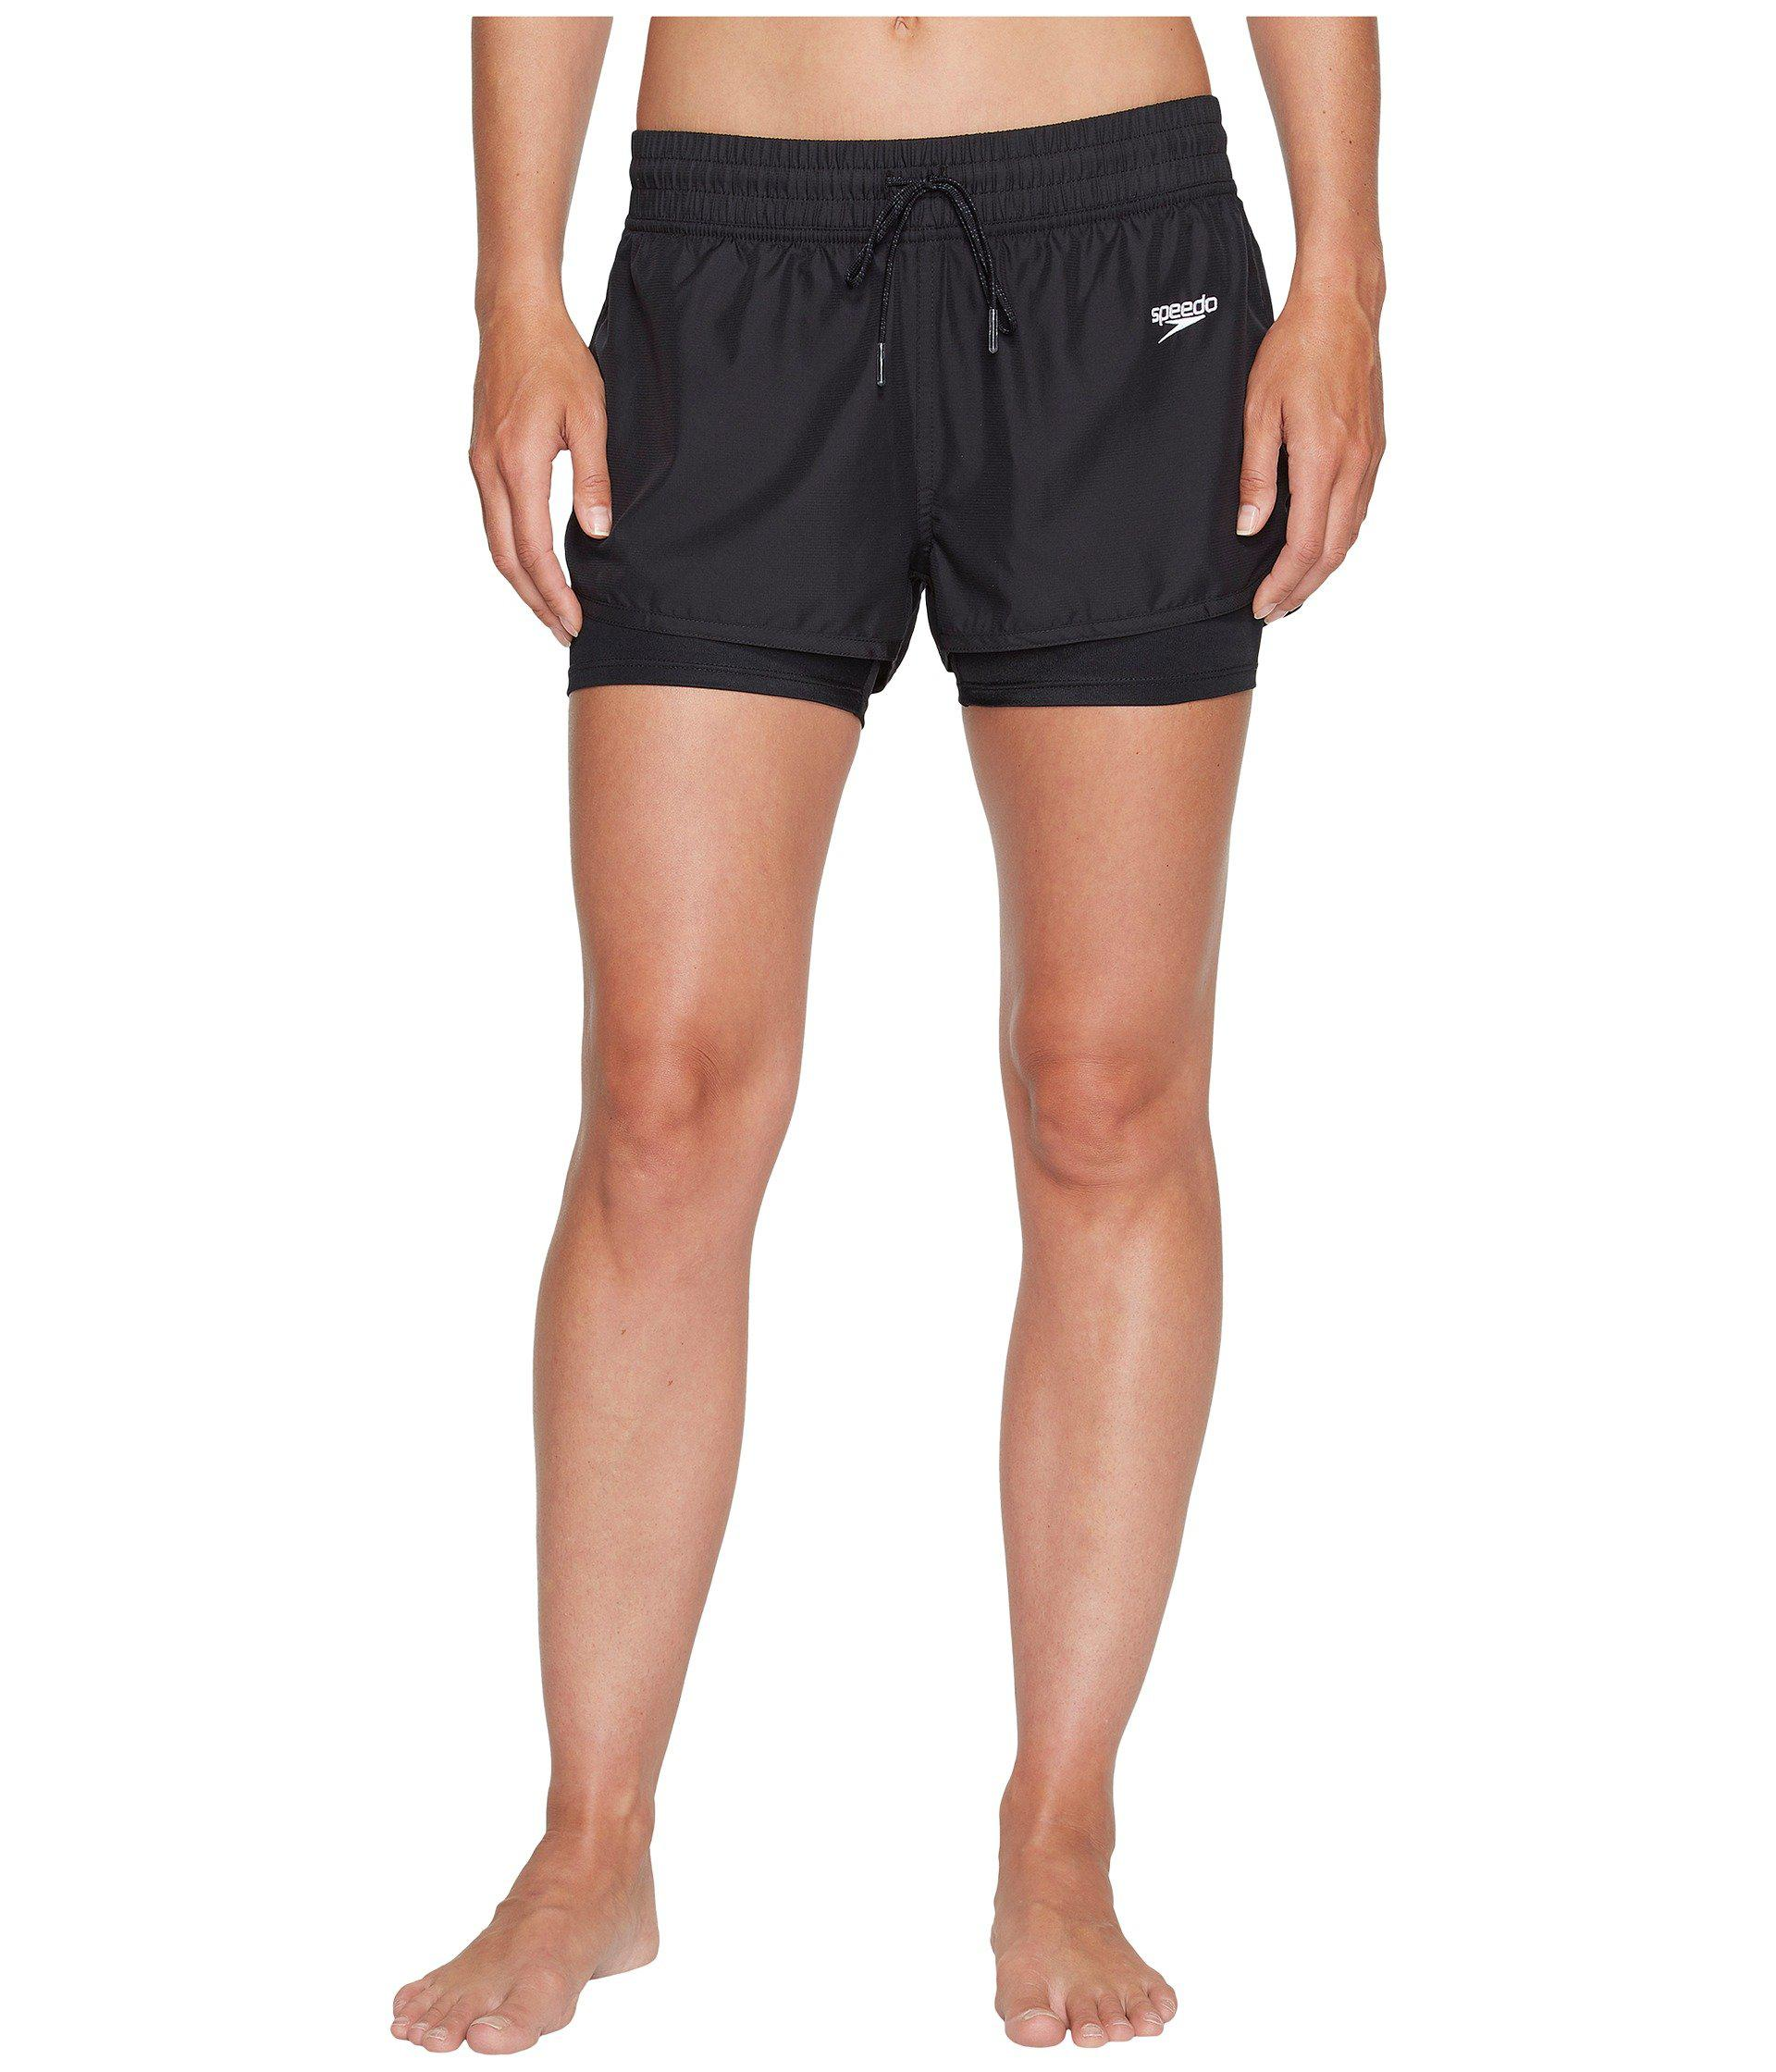 78800c5a76 Speedo - Black Hydro Volley Shorts - Lyst. View fullscreen